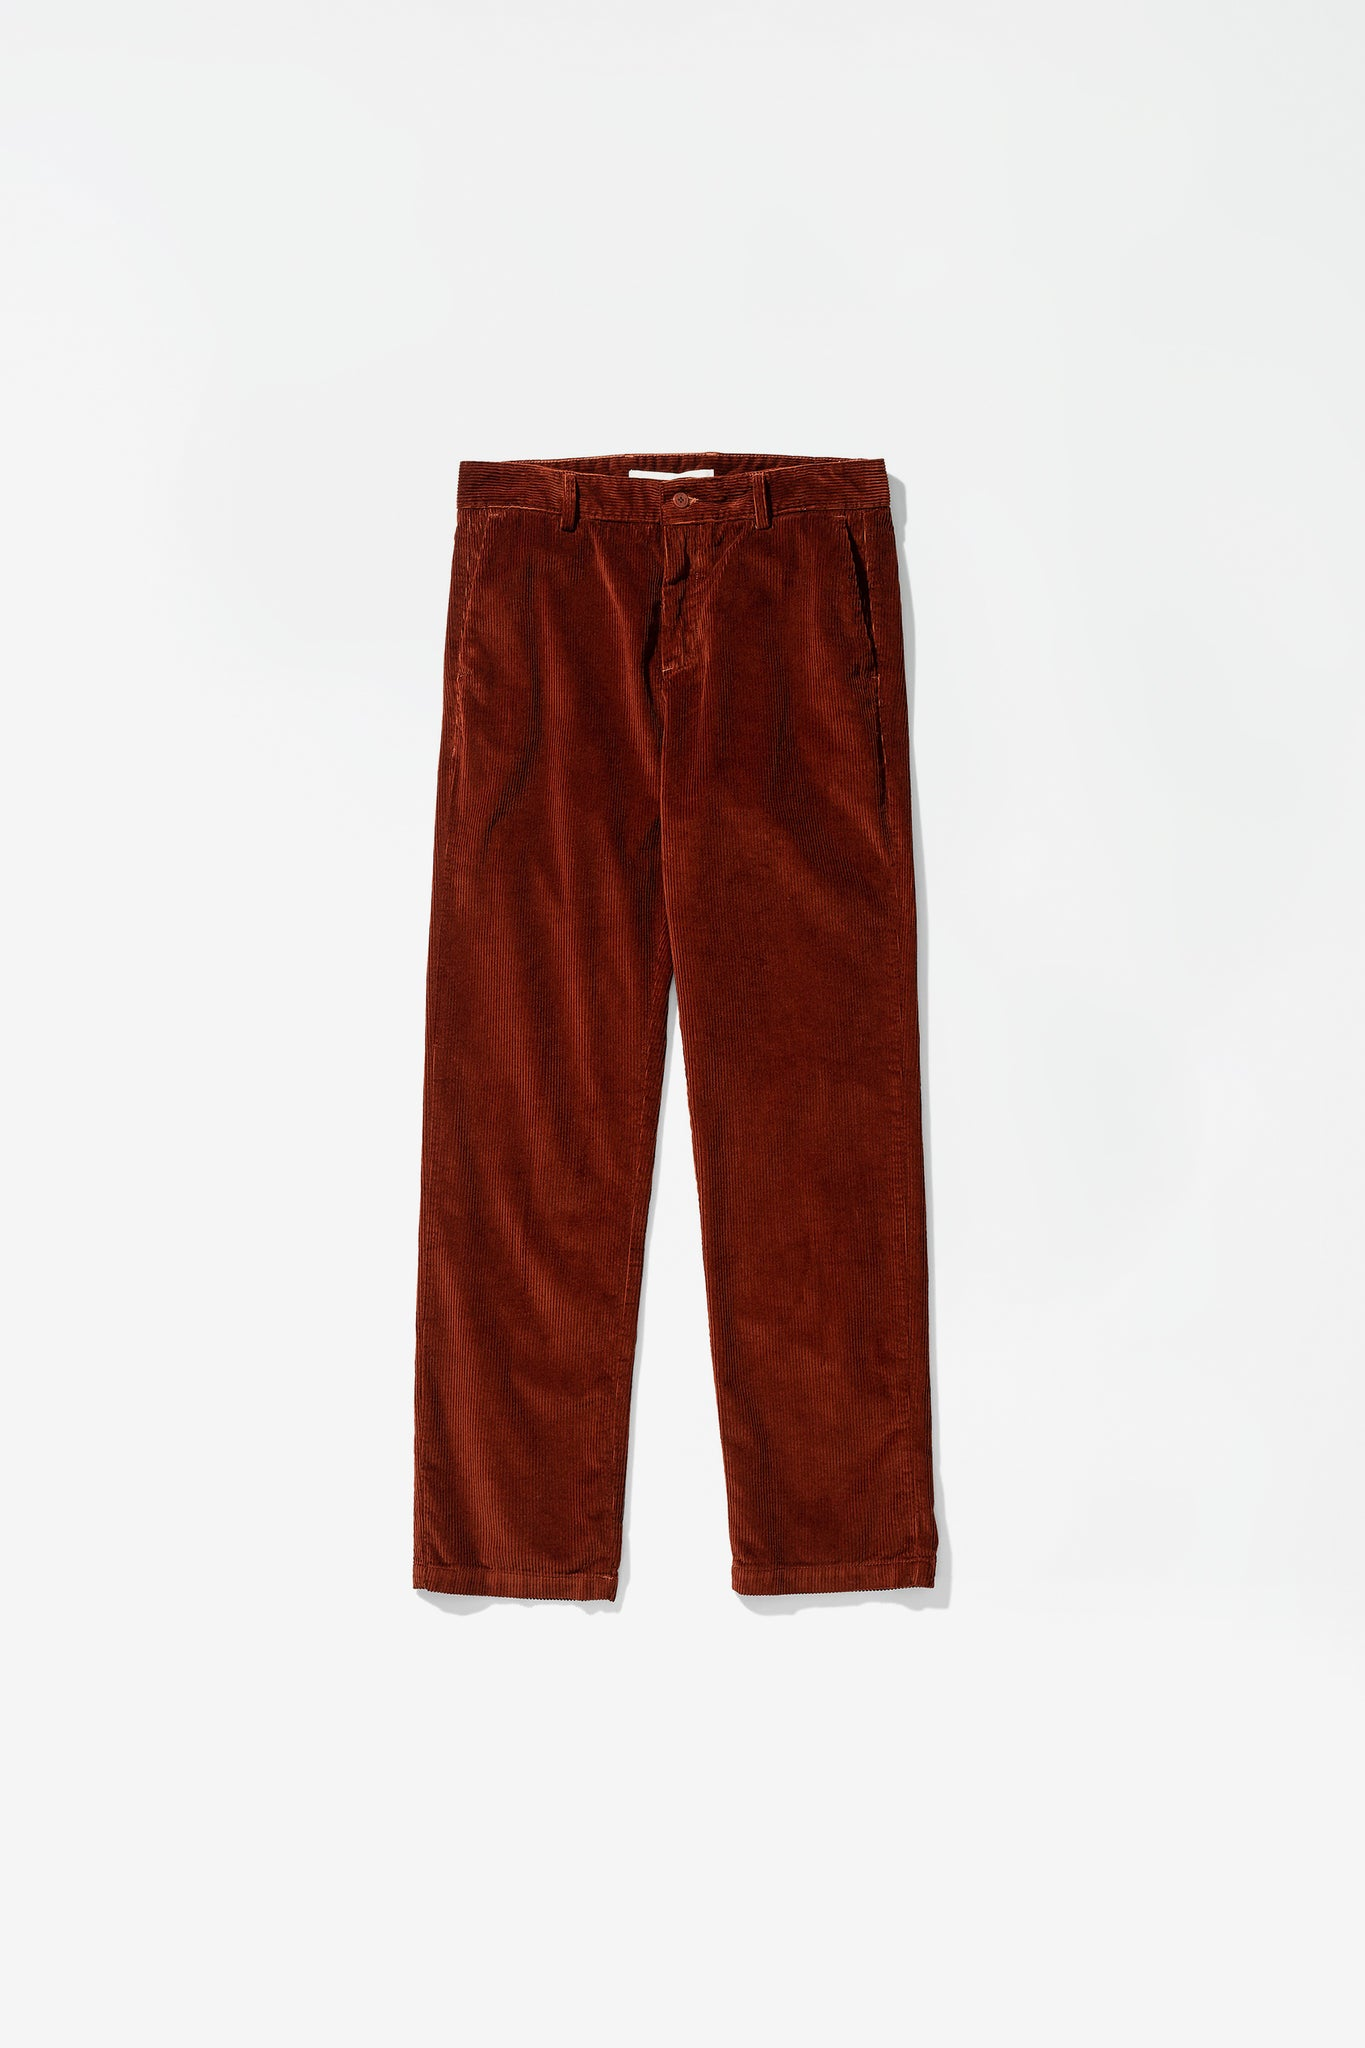 Albin 8 whale cord madder brown